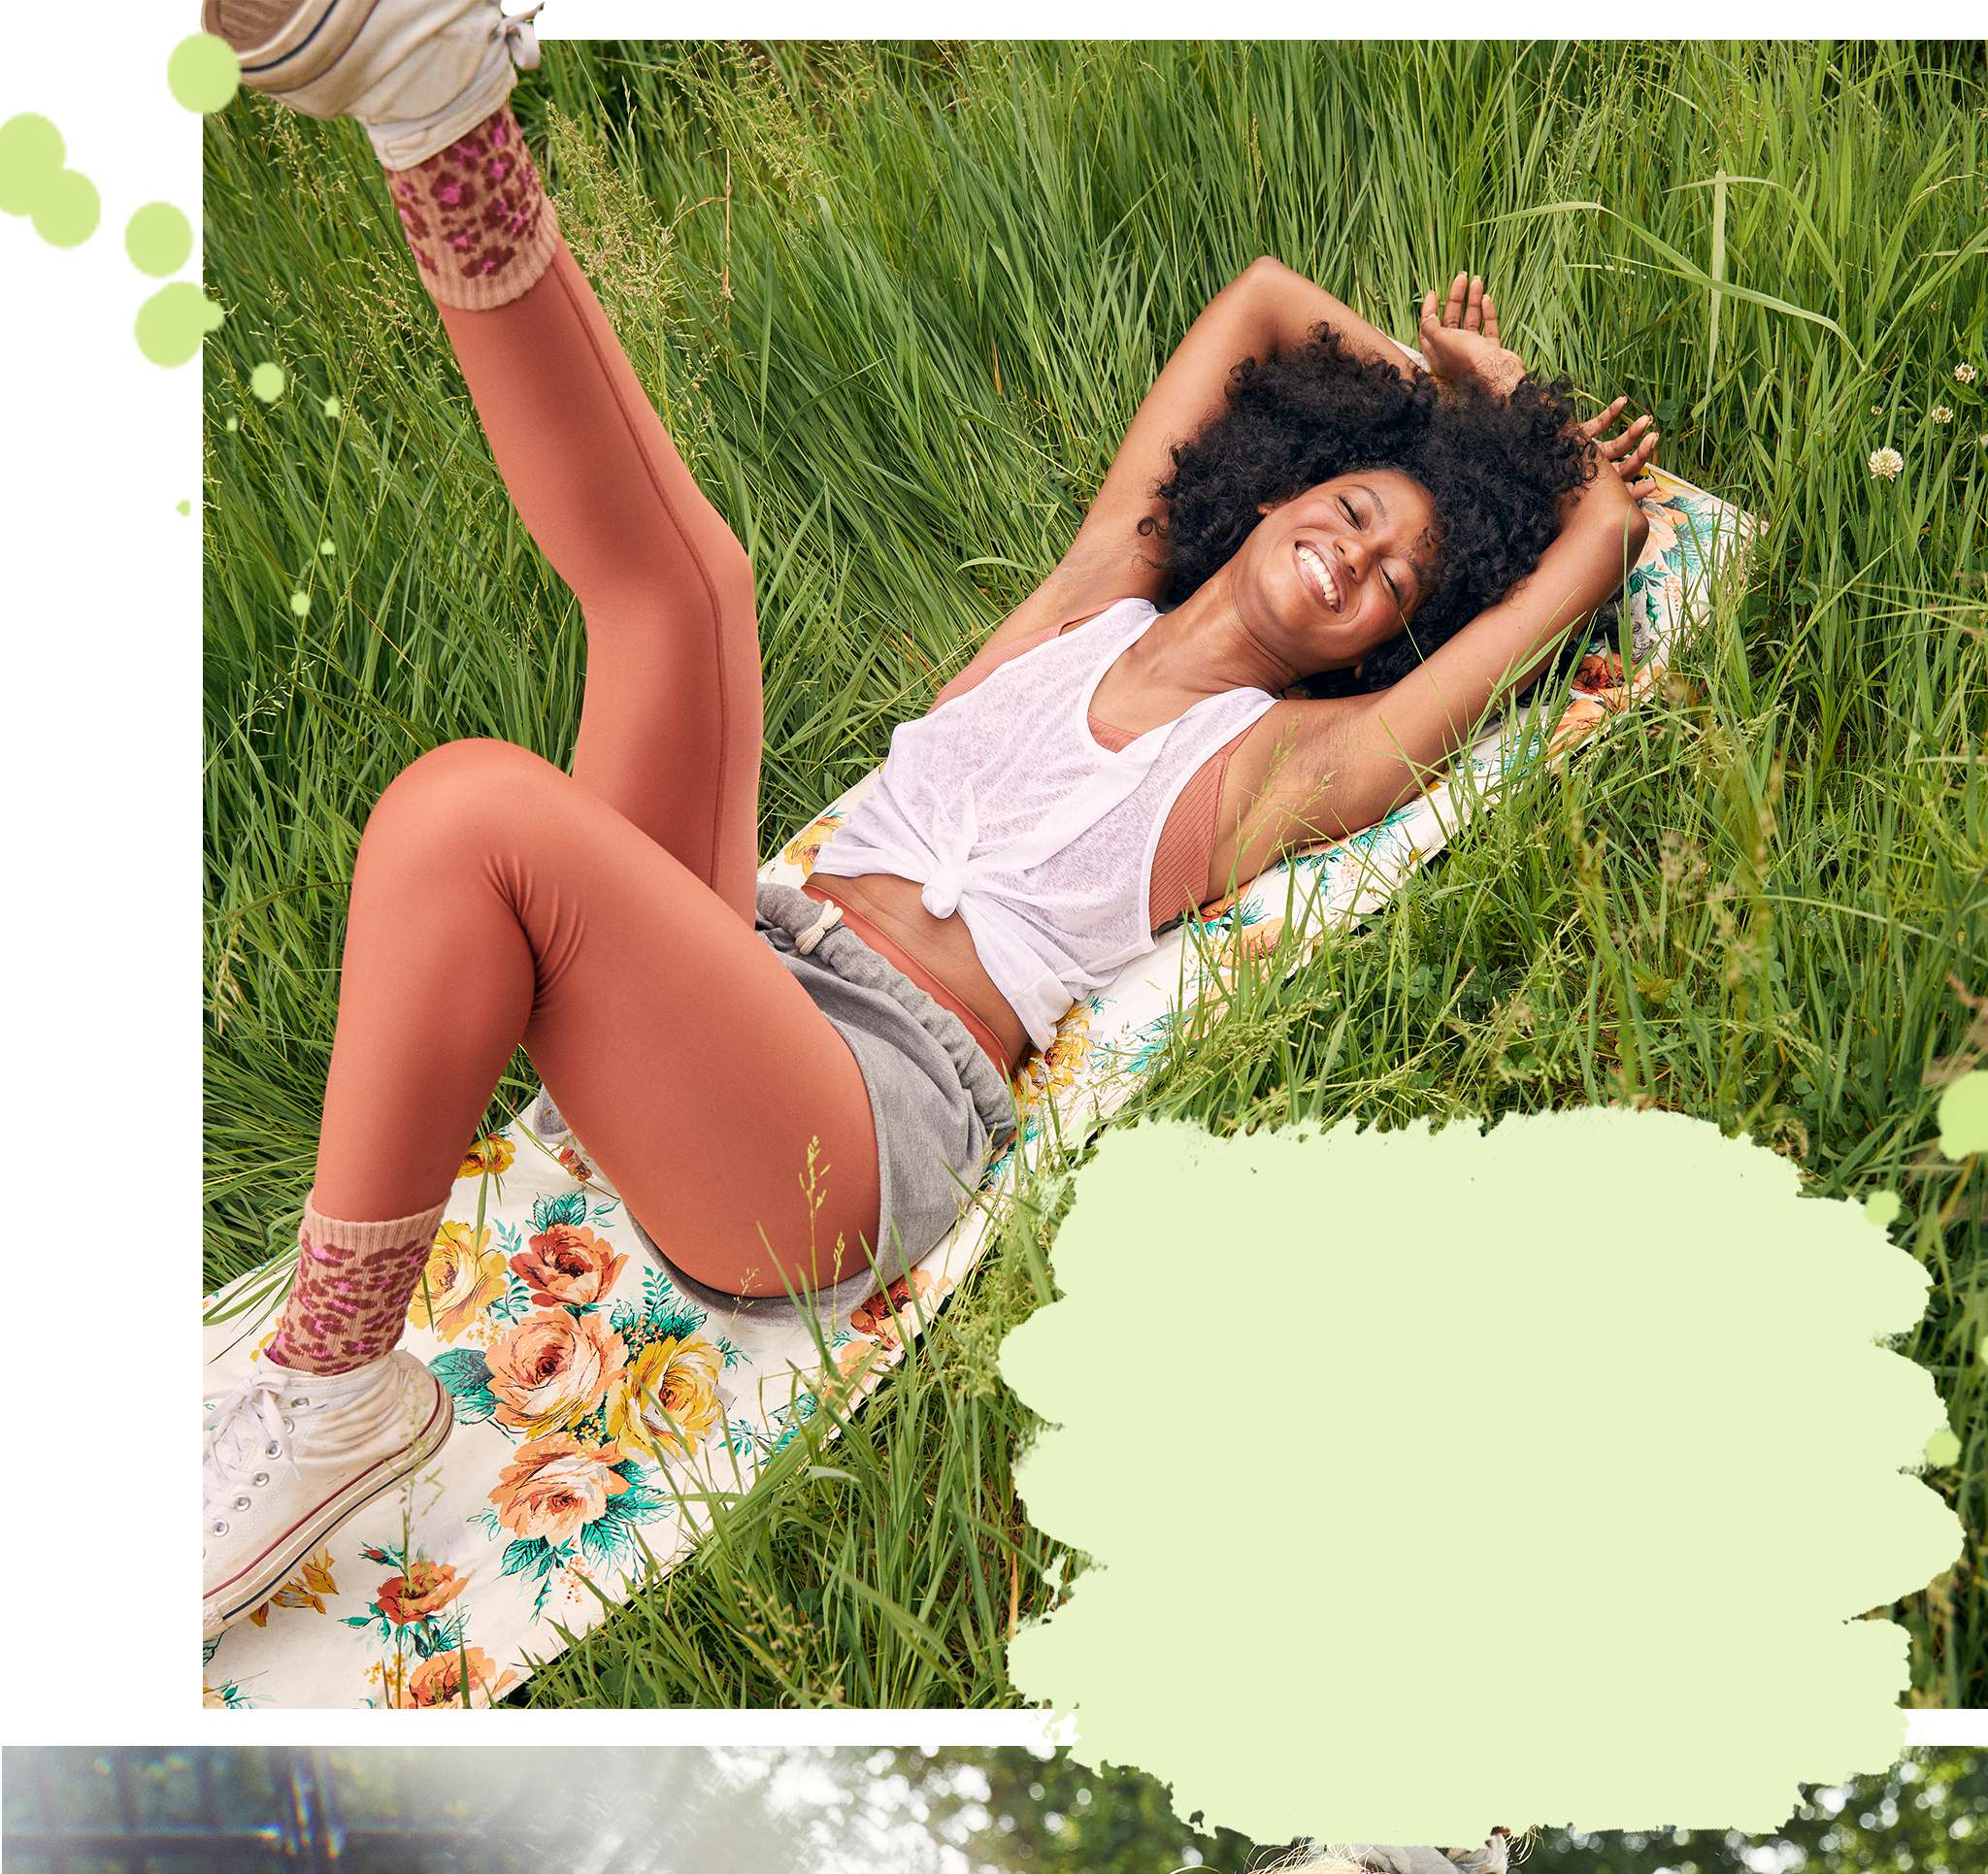 laying in the grass aerie apparel